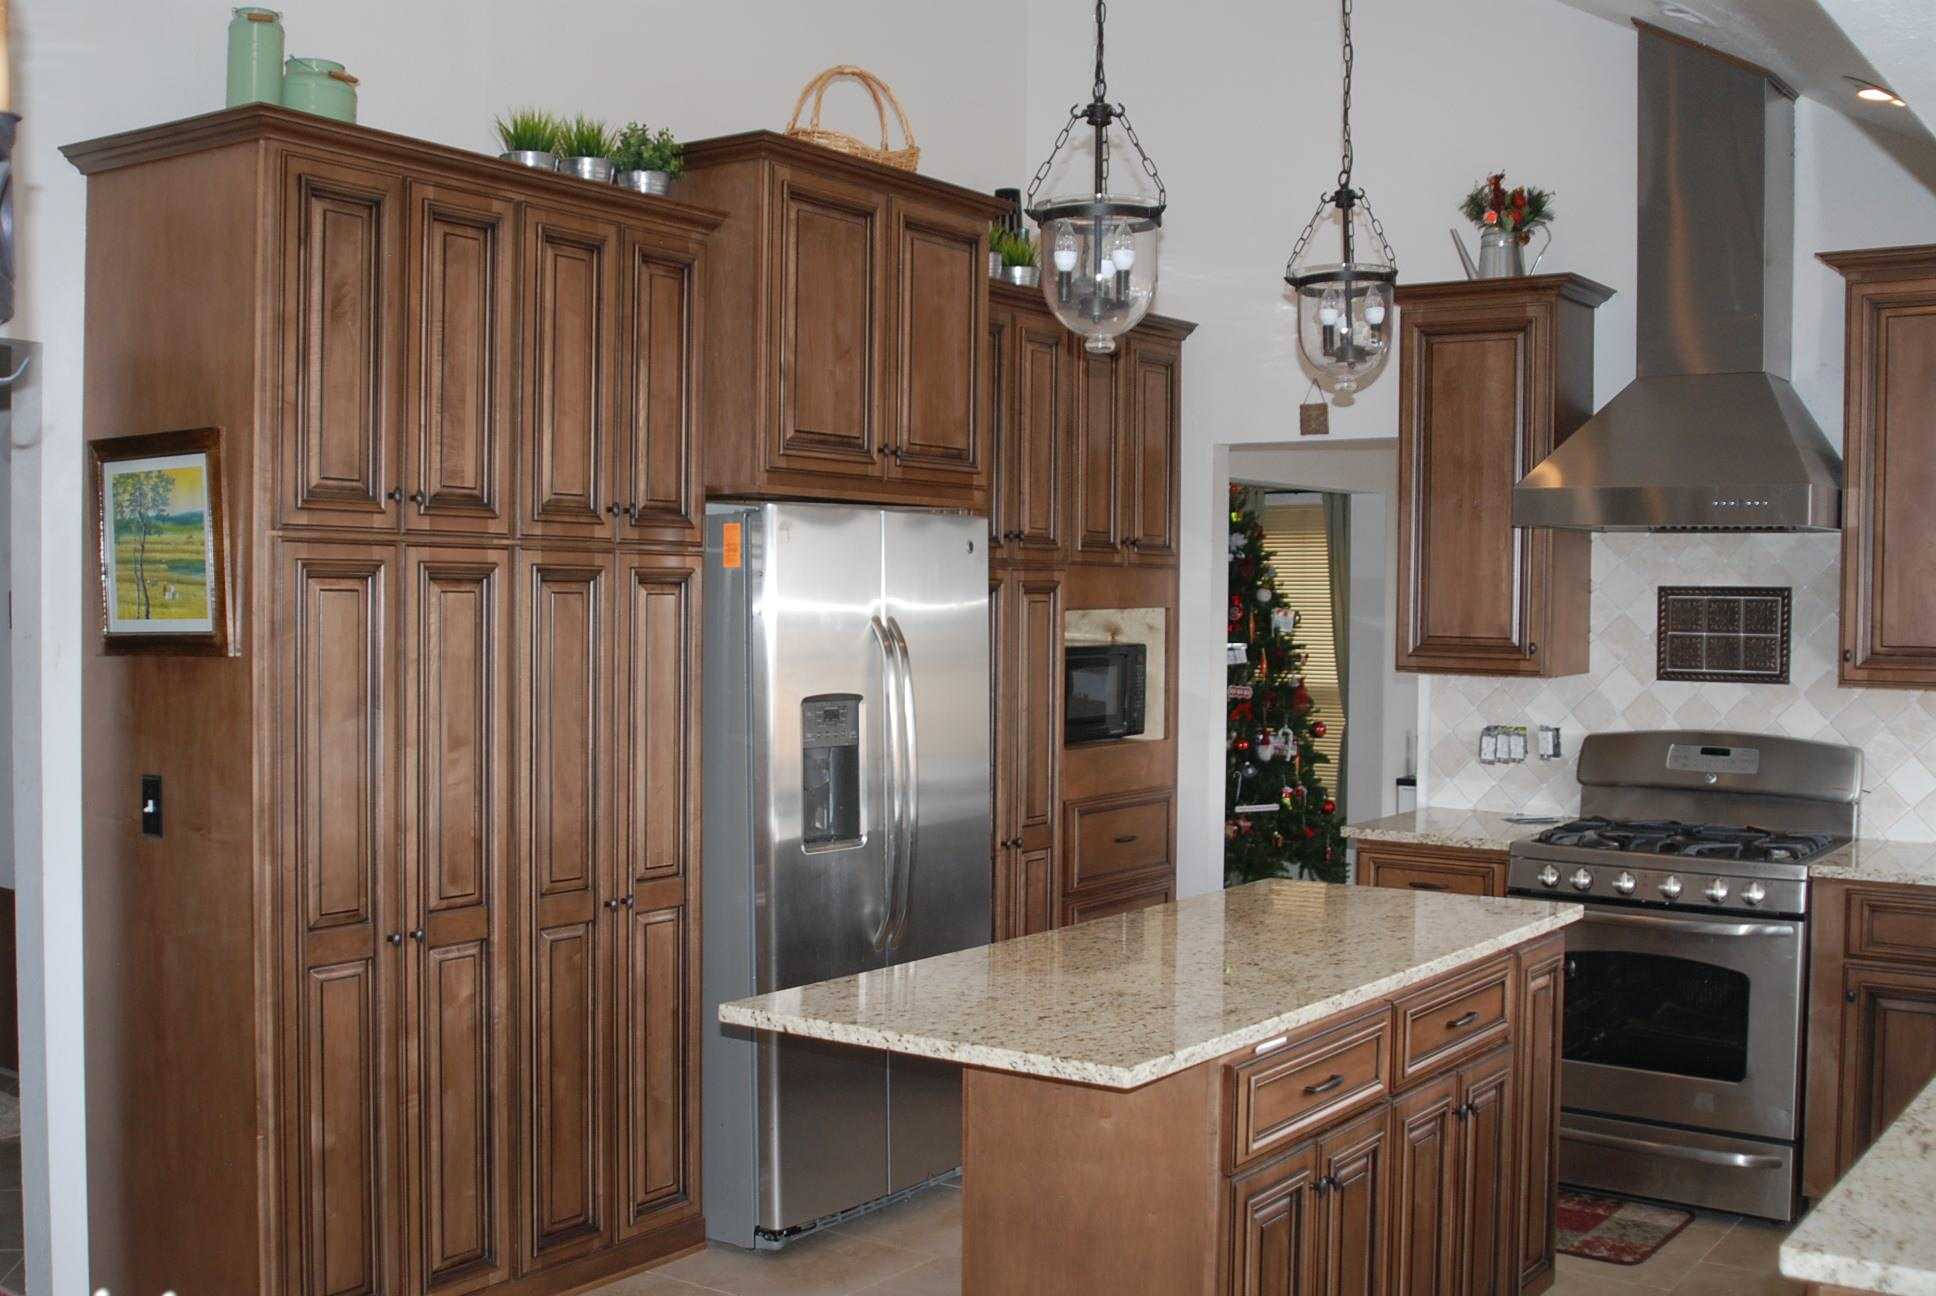 Littleton Kitchen-Overall view from sink